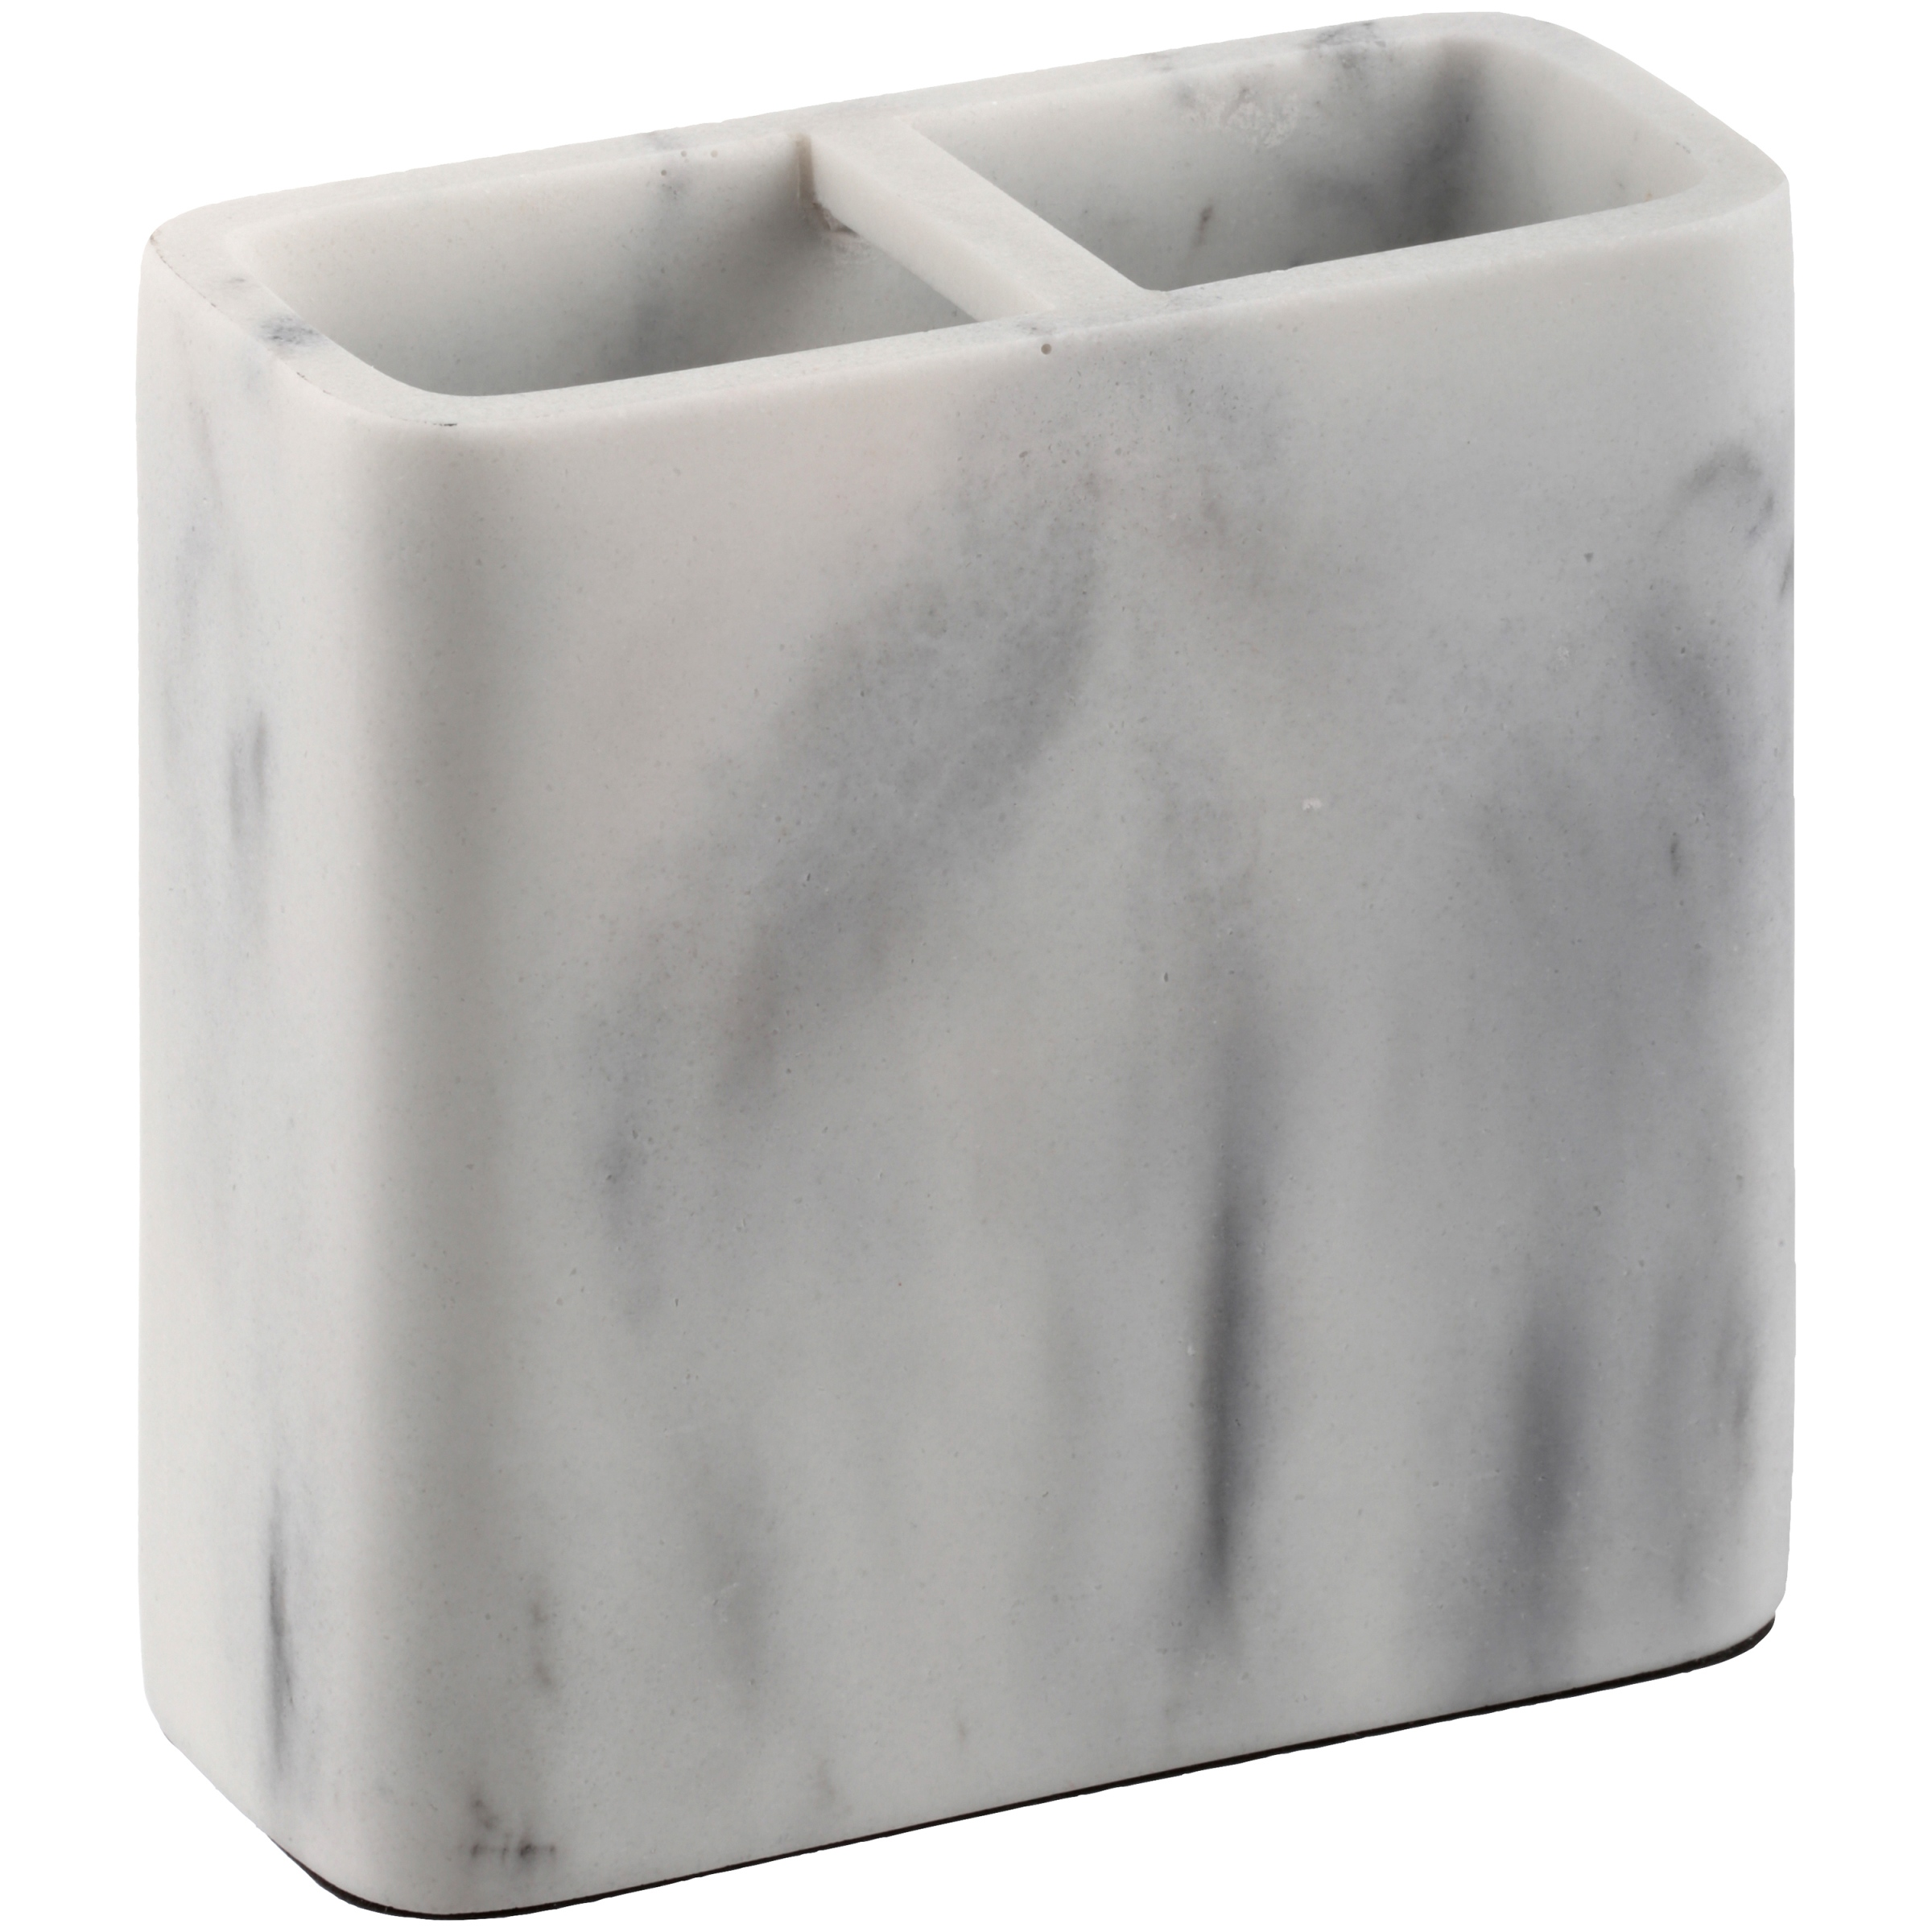 Better Homes & Gardens Faux Marble Toothbrush Holder, White